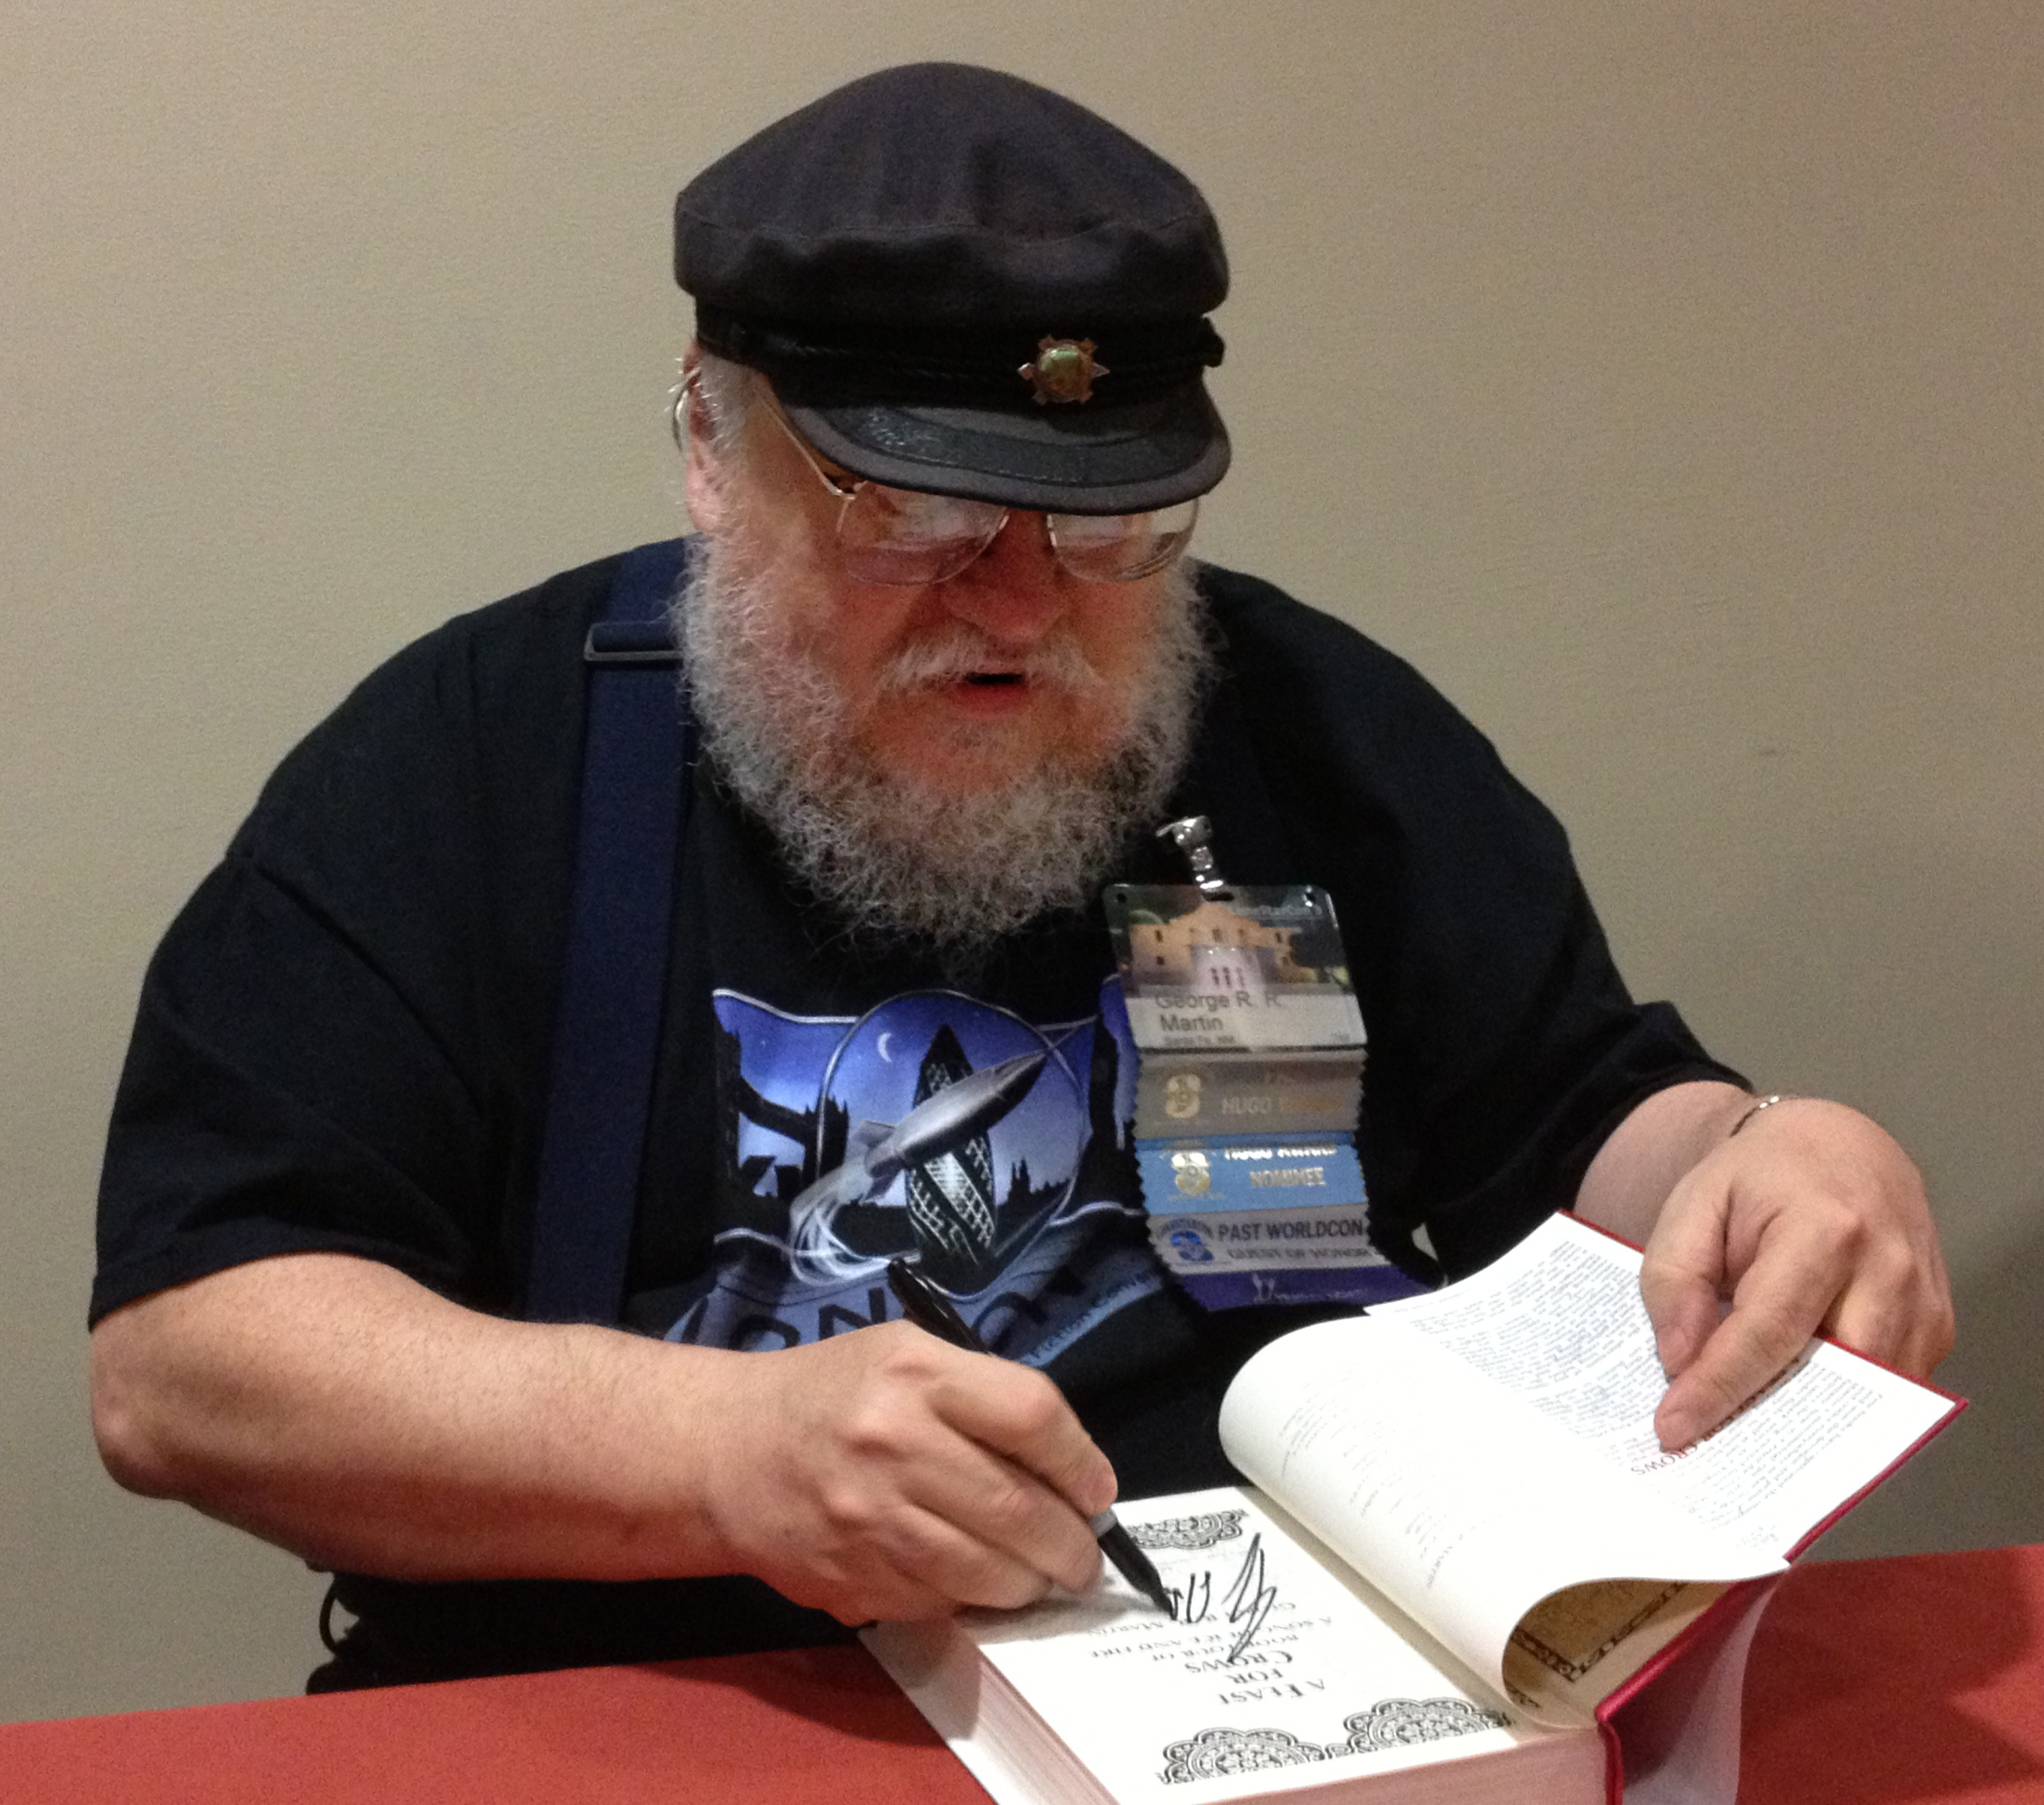 File:George R. R. Martin signing at LoneStarCon3.jpg - Wikimedia Commons